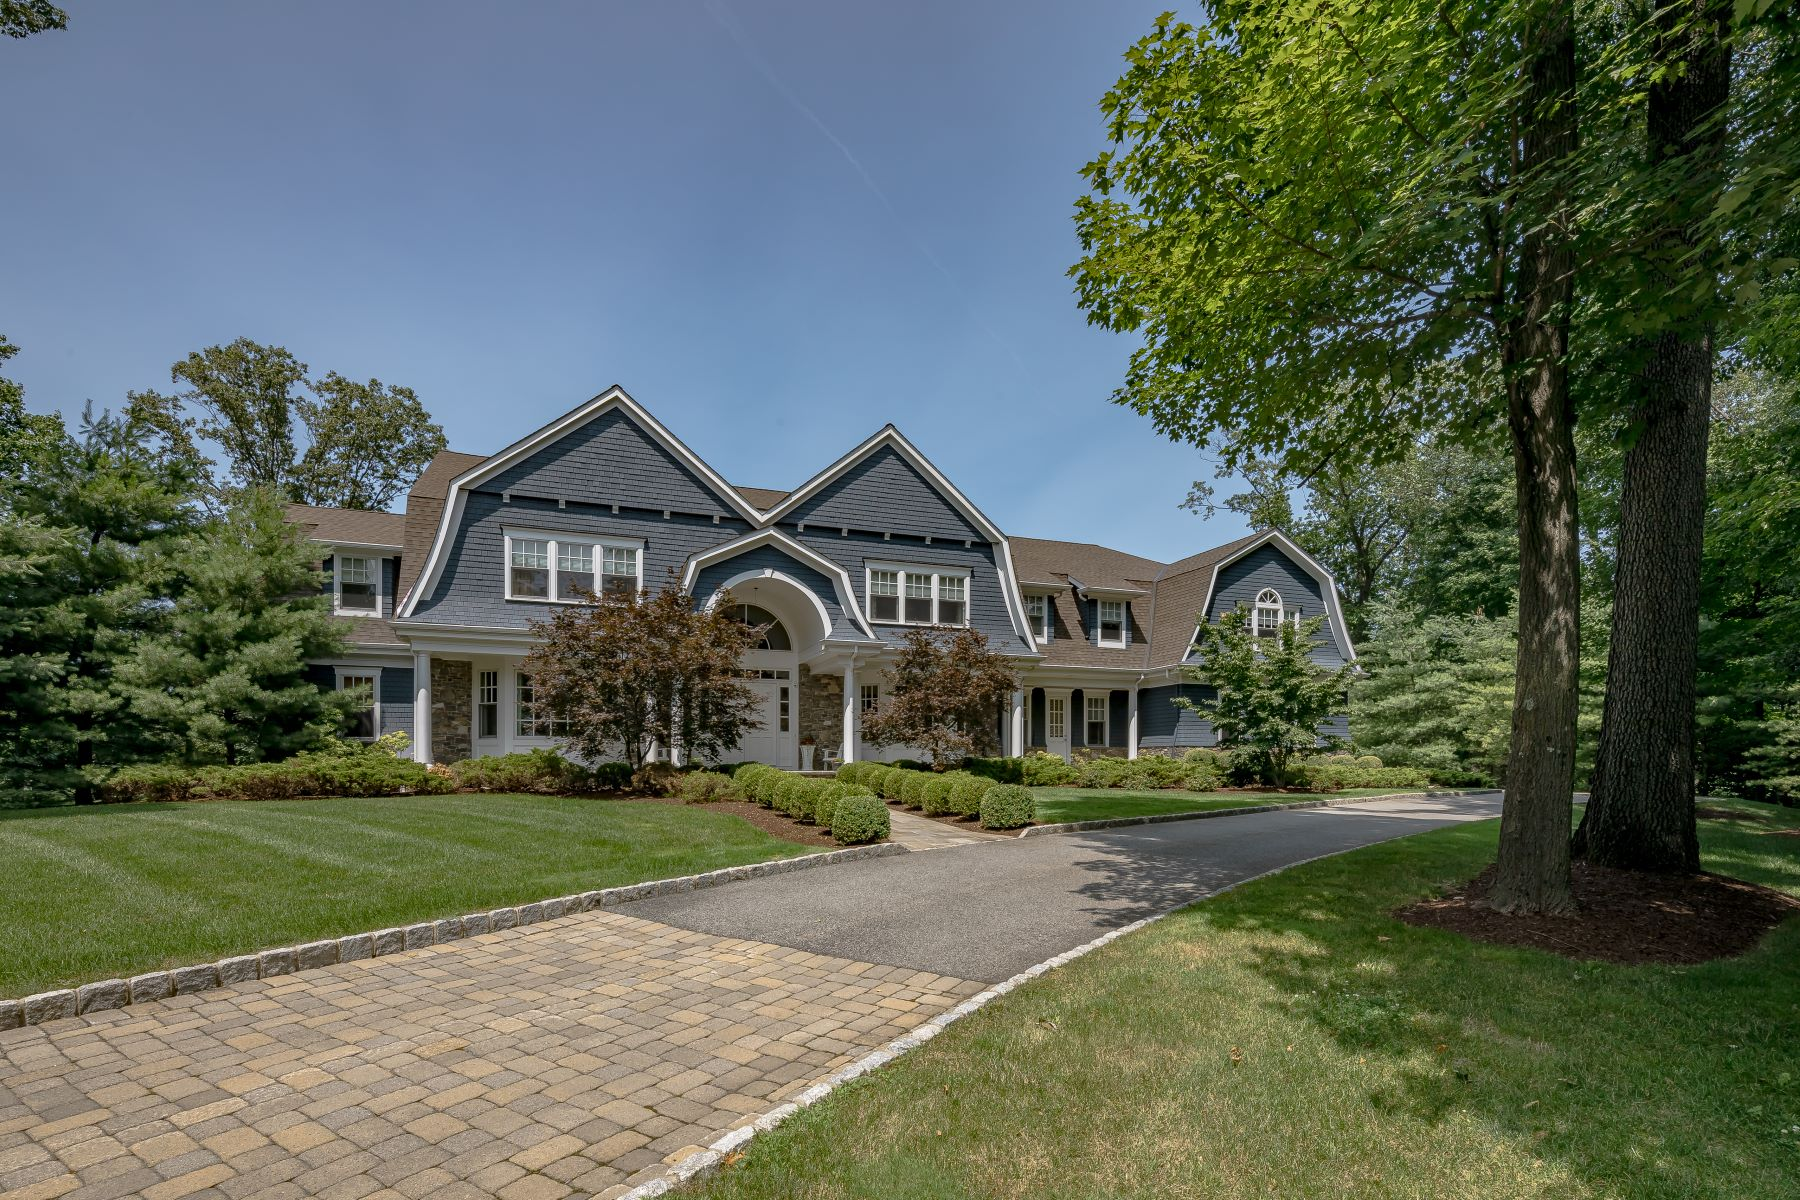 Single Family Homes por un Venta en Spectacular Colonial 79 Wisteria Way Bernardsville, Nueva Jersey 07924 Estados Unidos